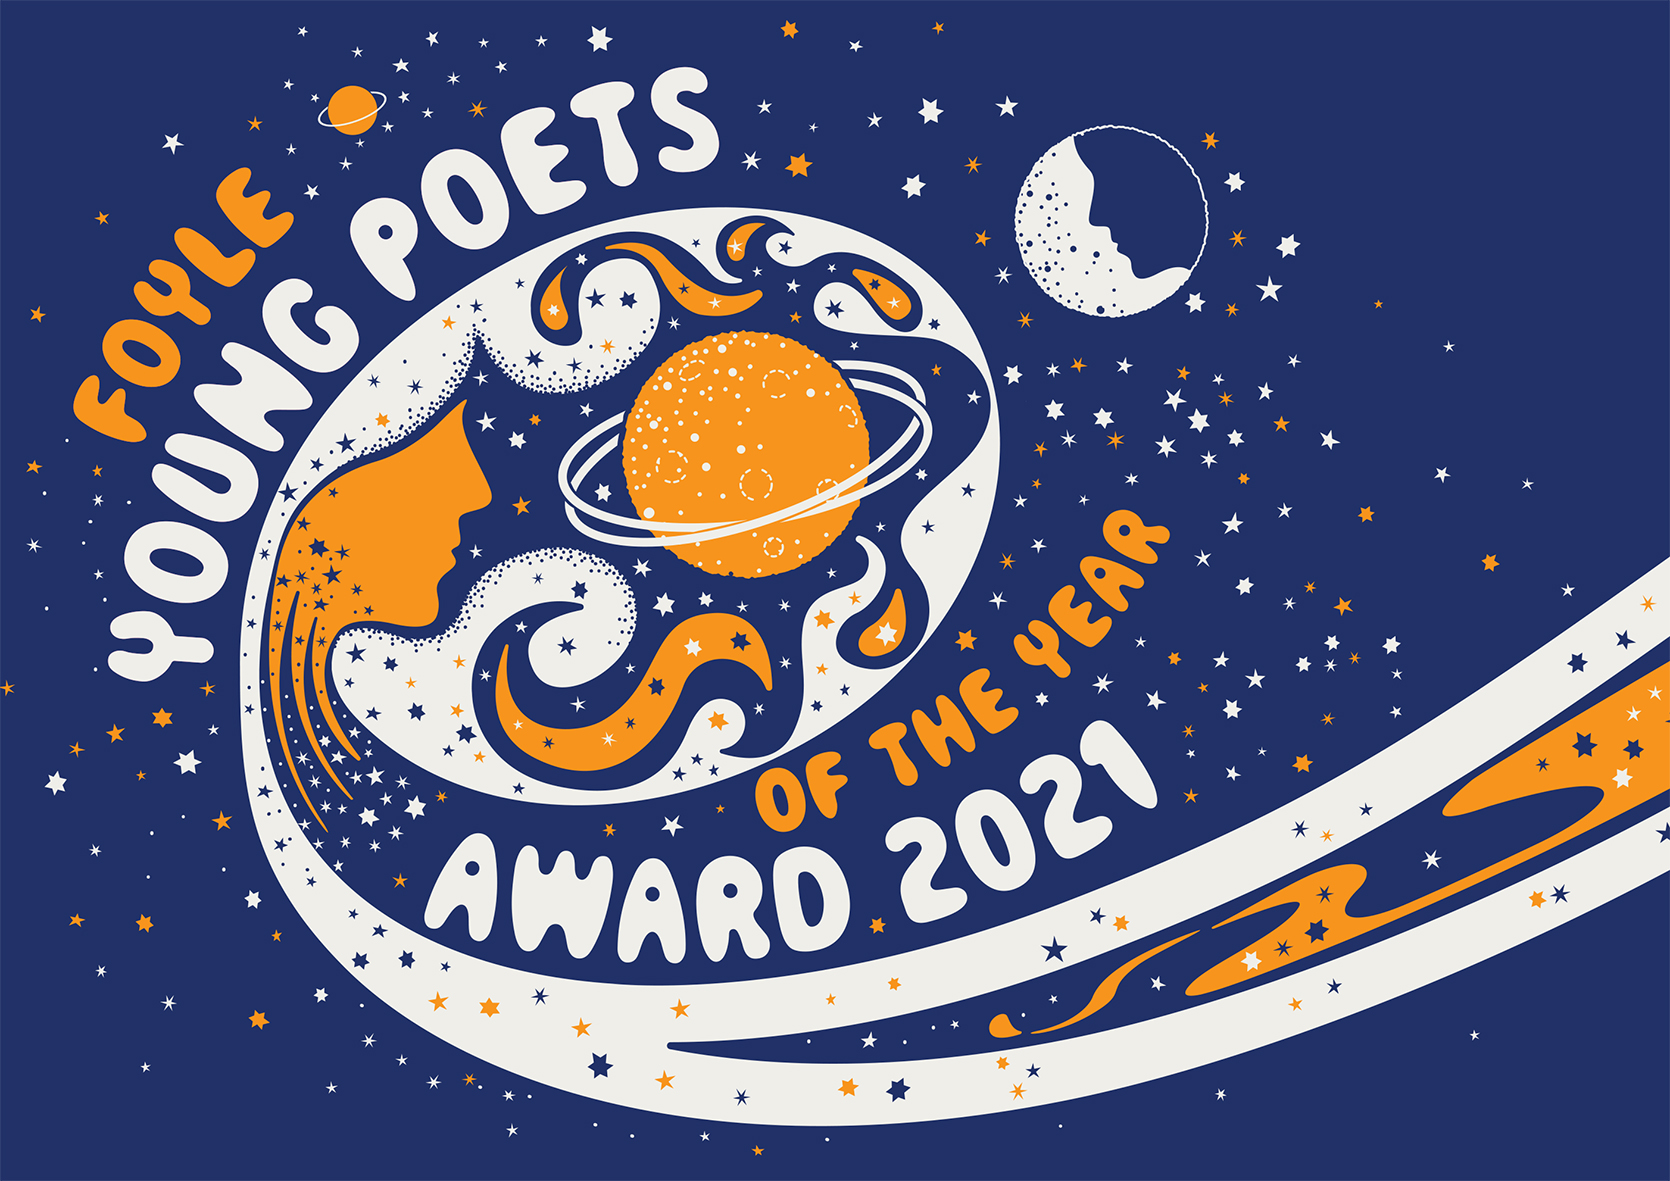 Artwork for Foyle Award 2021. Stars, planet, moon, and two faces in a constellation against a dark blue sky.